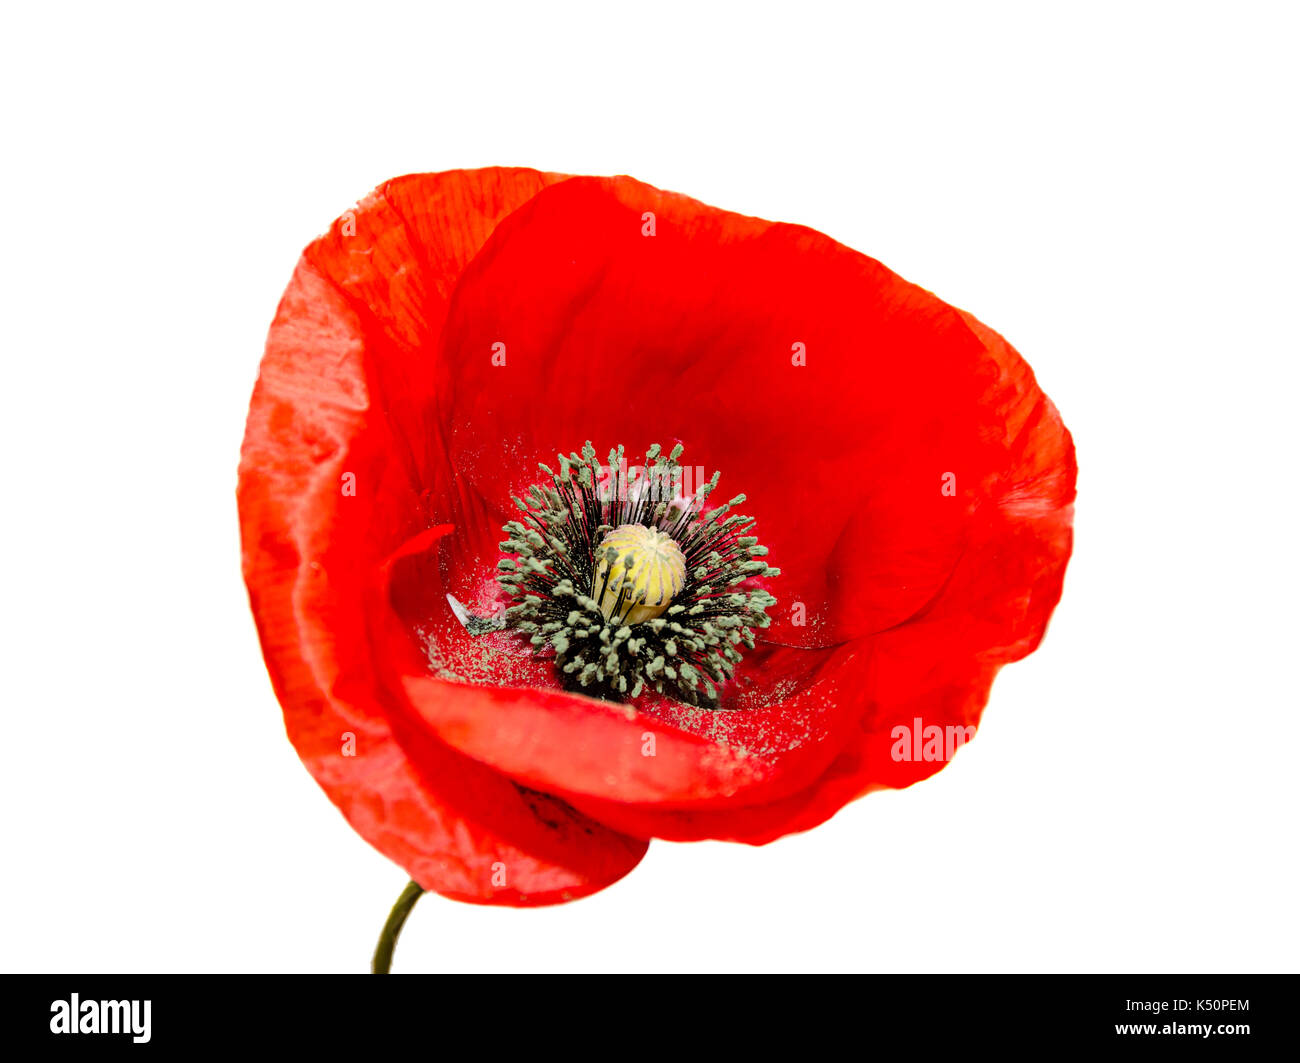 Red wild flower of Papaver rhoeas close up (corn poppy, corn rose, field poppy), isolated on white background. - Stock Image